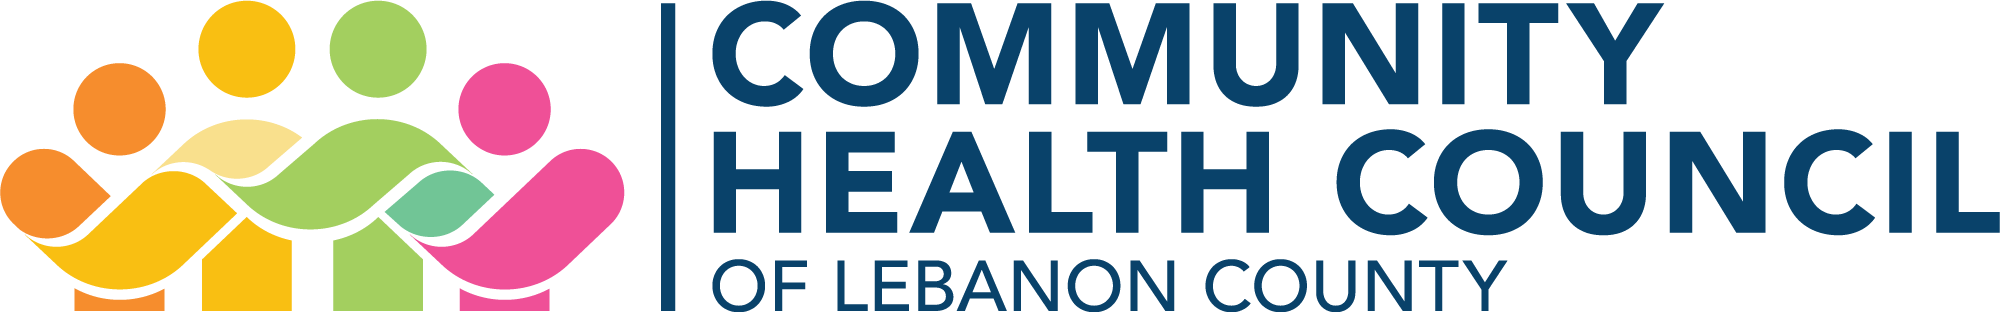 Community Health Council of Lebanon County